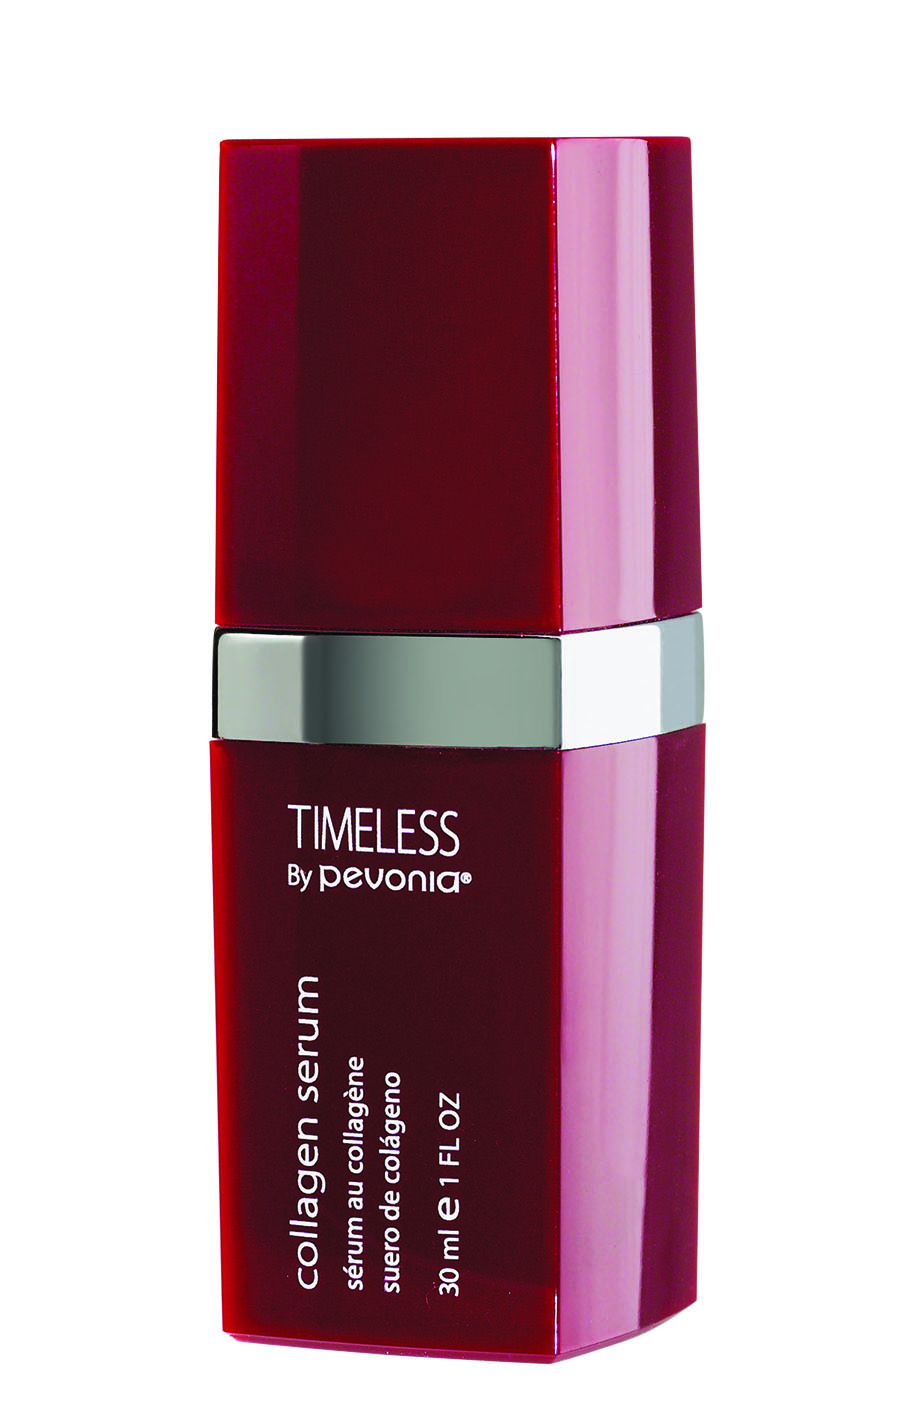 Timeless by Pevonia Collagen Serum